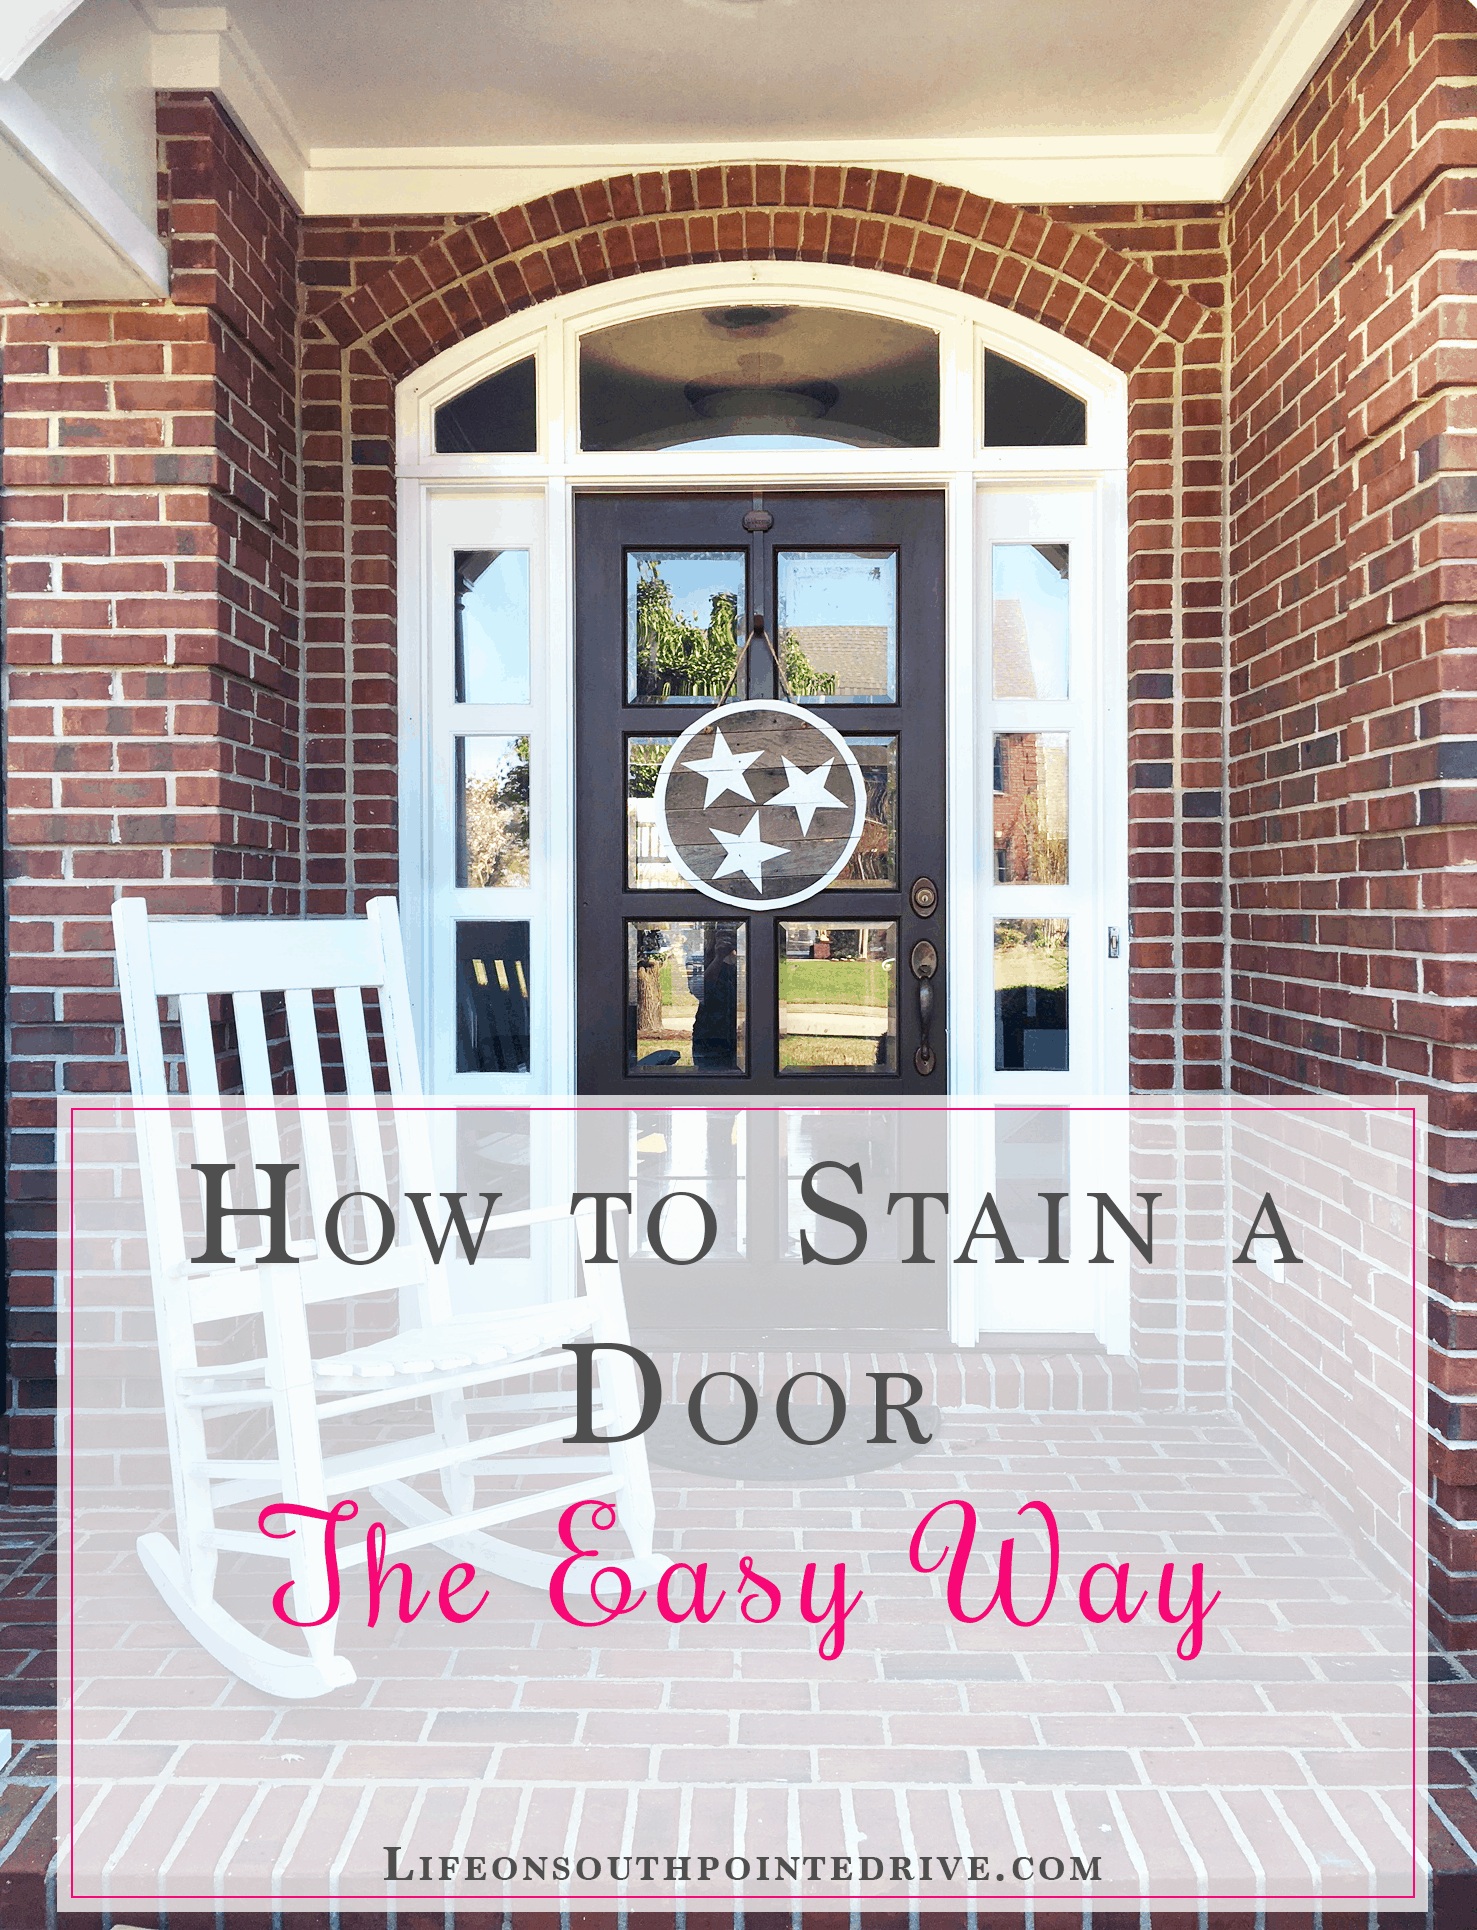 How to stain a door the easy way life on southpointe drive how to stain a door the easy way door staining gel stain gel rubansaba